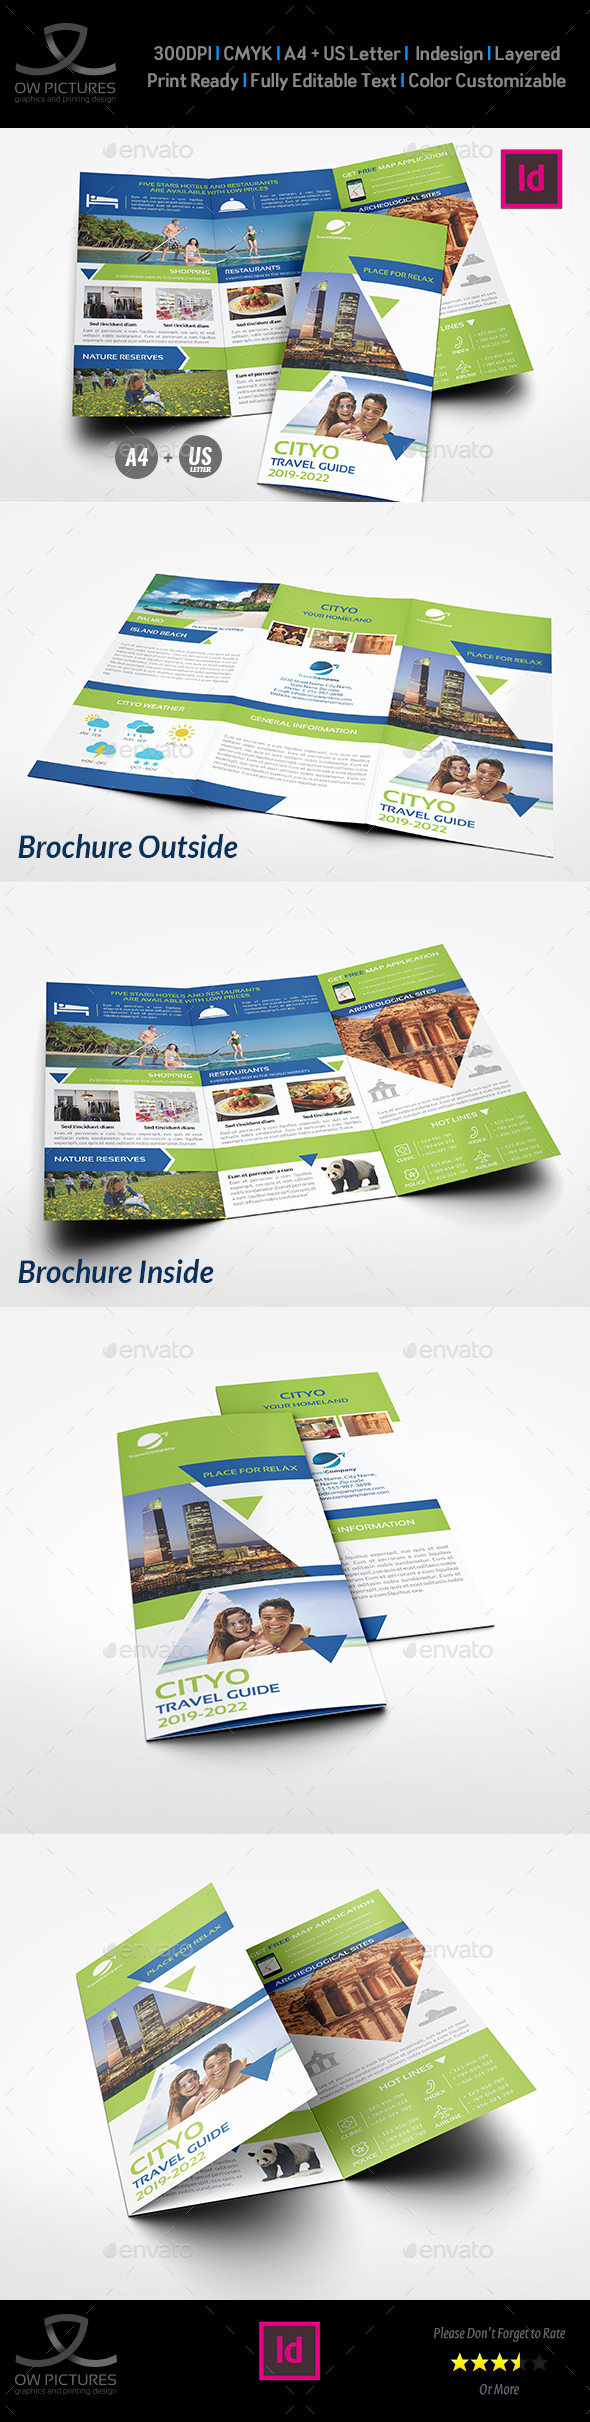 Travel Guide Tri Fold Brochure Template - Brochures Print Templates